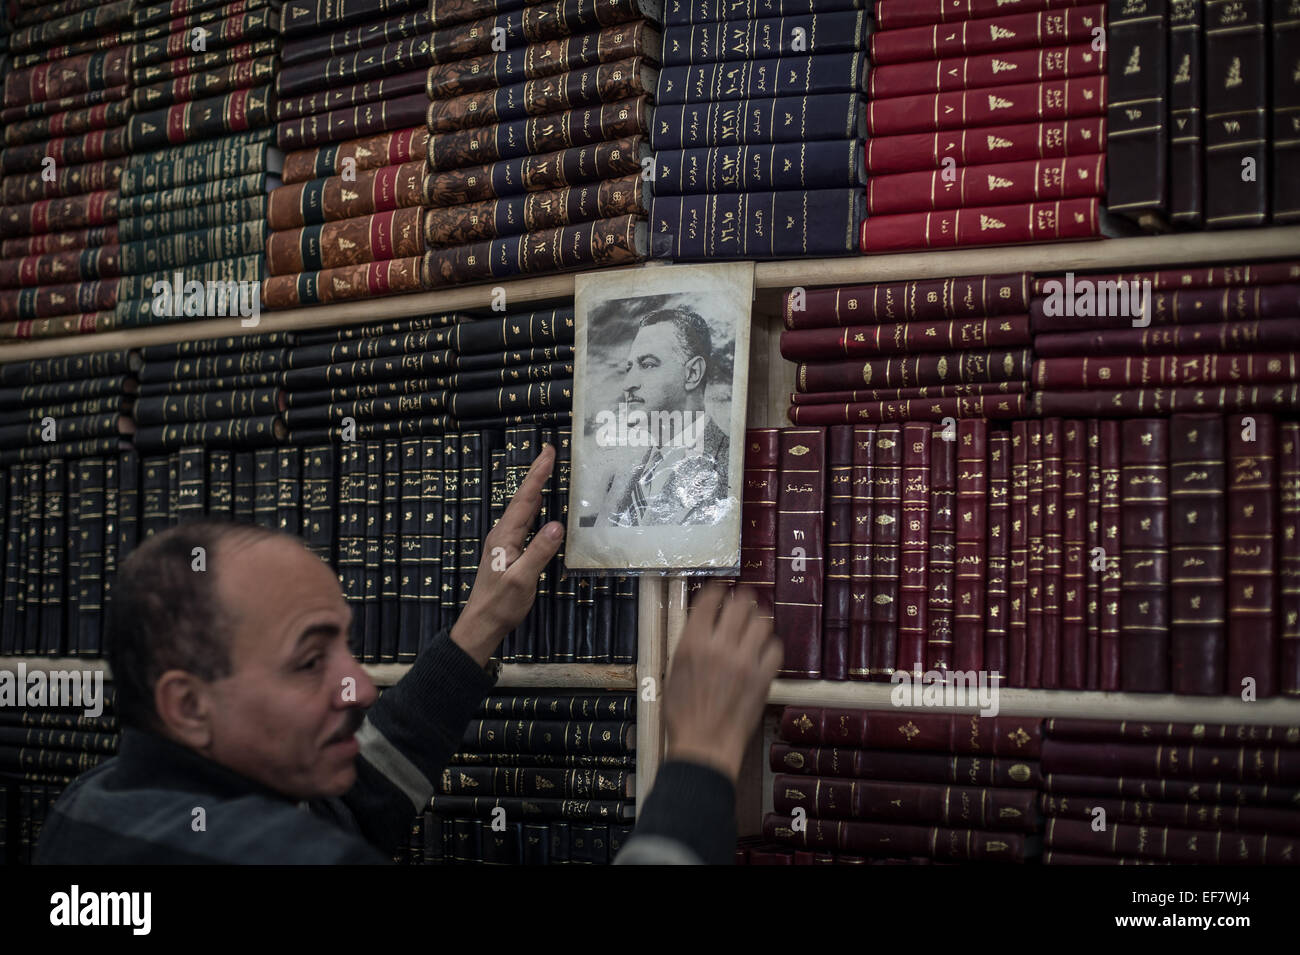 (150128) -- CAIRO, Jan. 28, 2015 (Xinhua) -- A man shows an old photograph of Egypt's former President Gamal - Stock Image